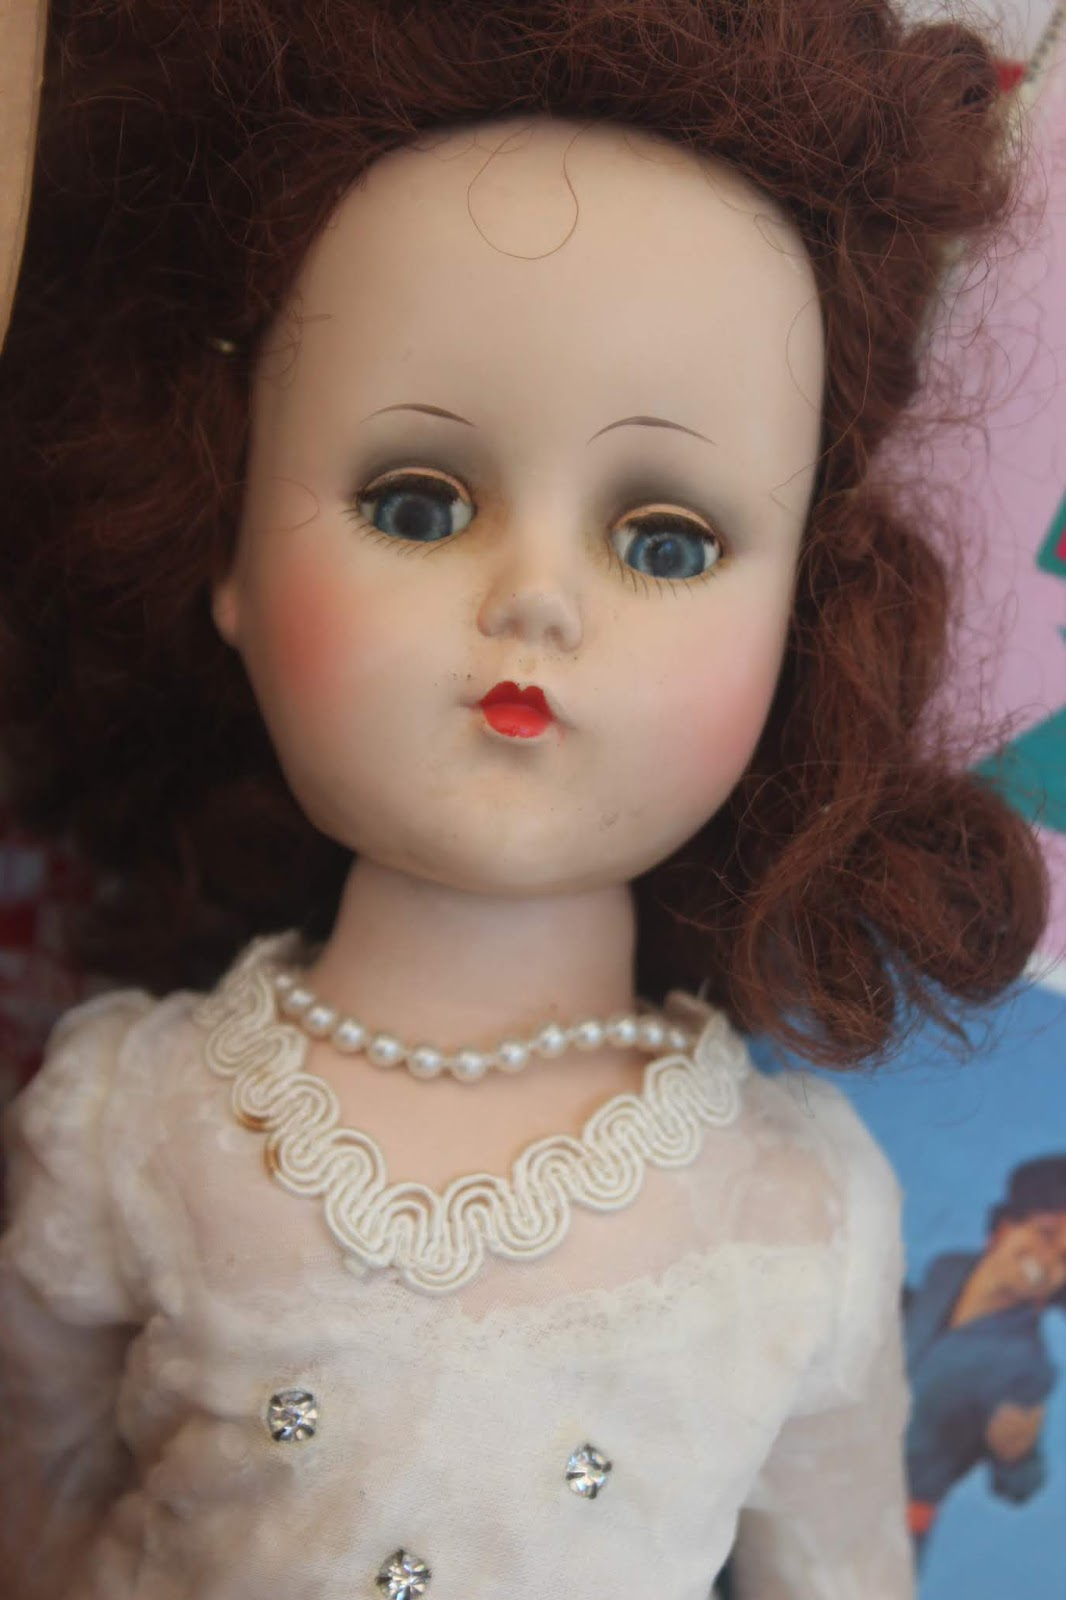 The other day I posted about my flea market haul. One of the dolls I  mentioned was a hard plastic Nanette doll by Arranbee. 6ba9fea48ea9